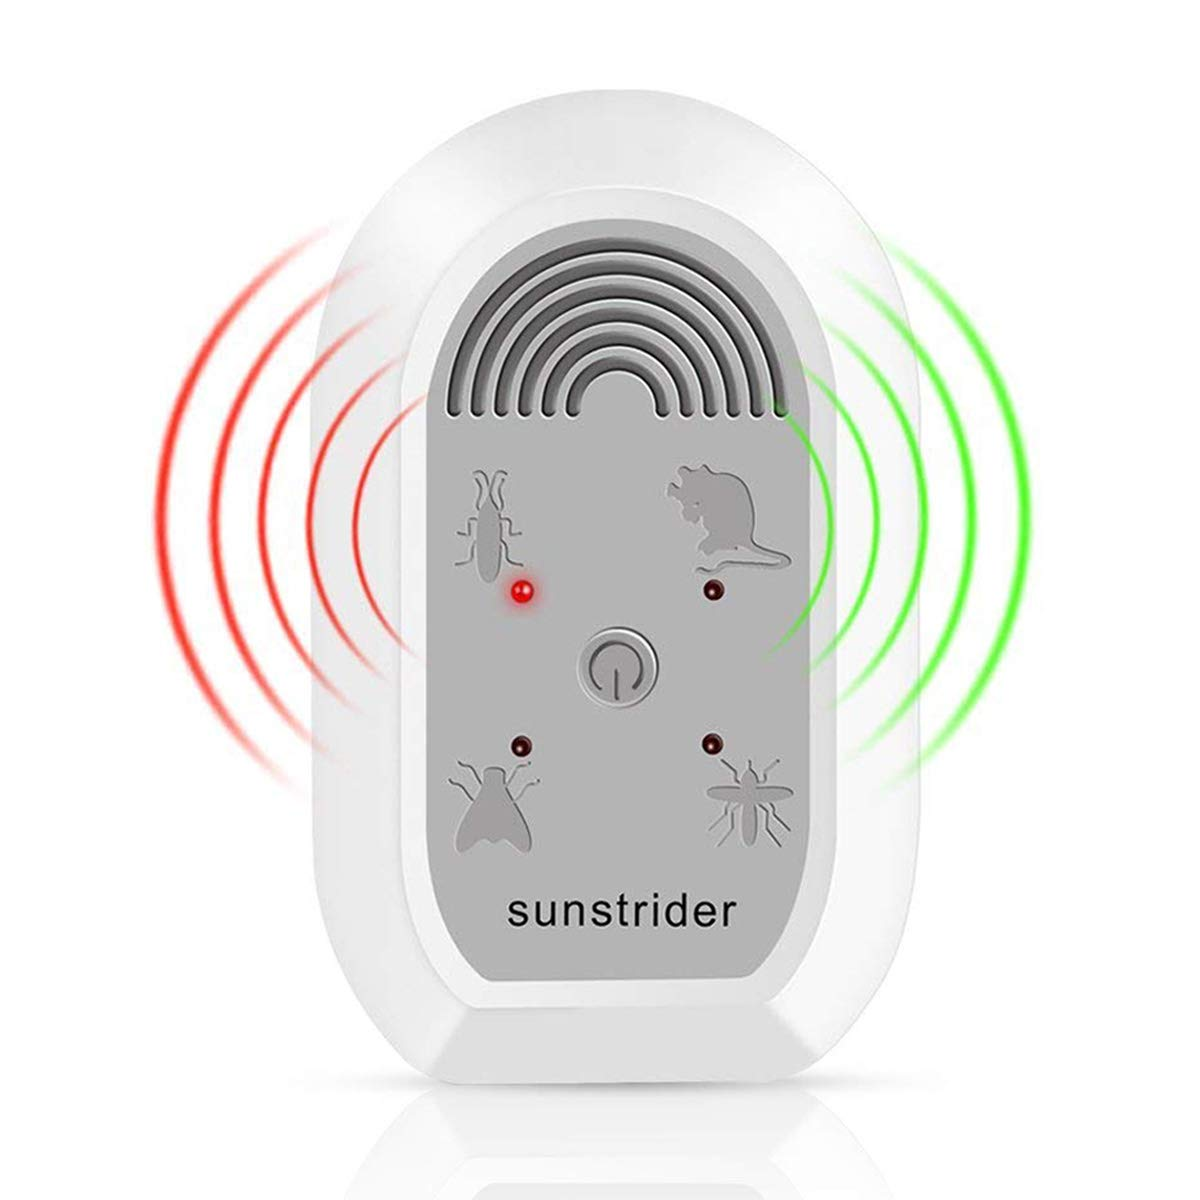 Sunstrider Ultrasonic Pest Repeller Electronic Bug Mosquito Repellent Circuitbest Repellentindoor Plug In Indoor Use Control For Mice Roaches Bedbugs